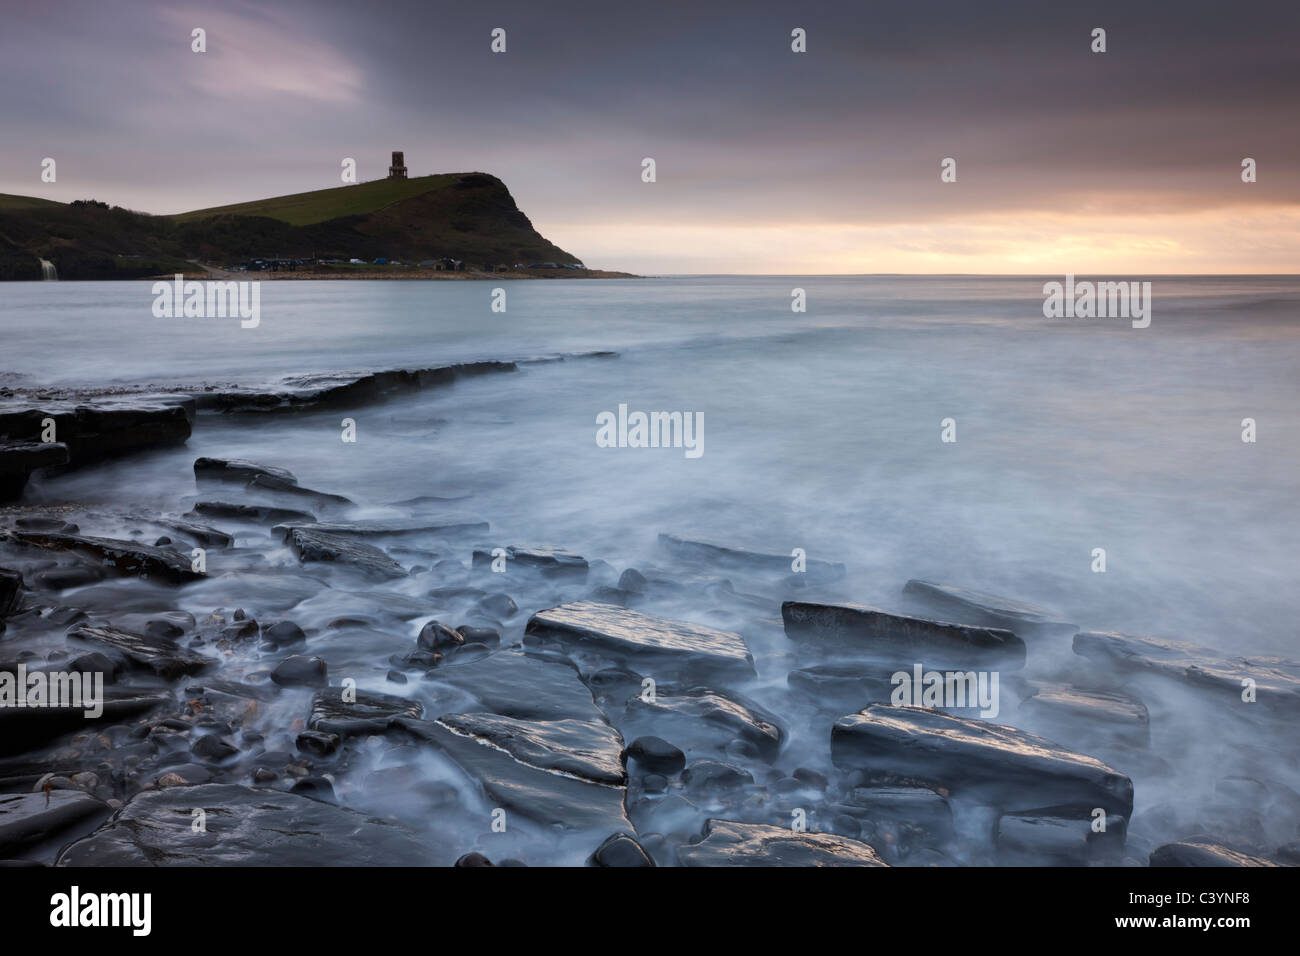 Kimmeridge Bay and Clavell Tower, Jurassic Coast, Dorset, England. Winter (February) 2011. - Stock Image